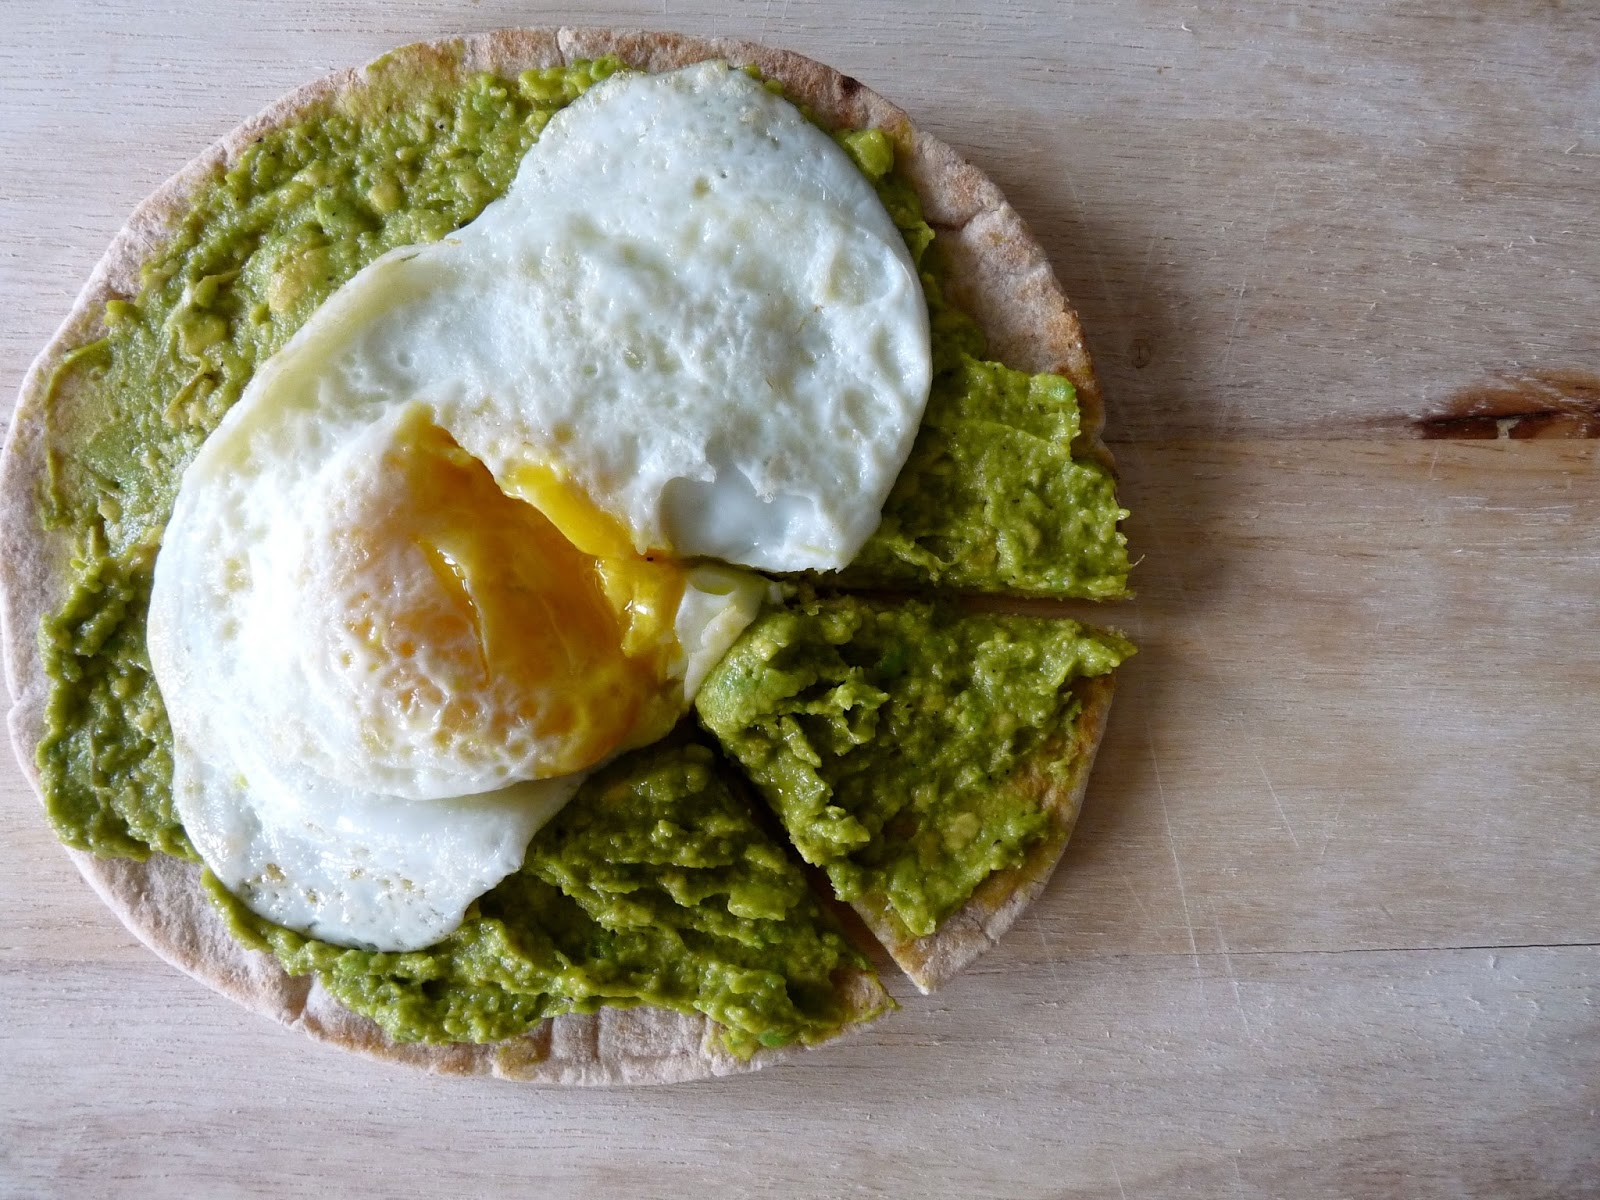 ... is there anything better then the egg and avocado pairing? Not likely